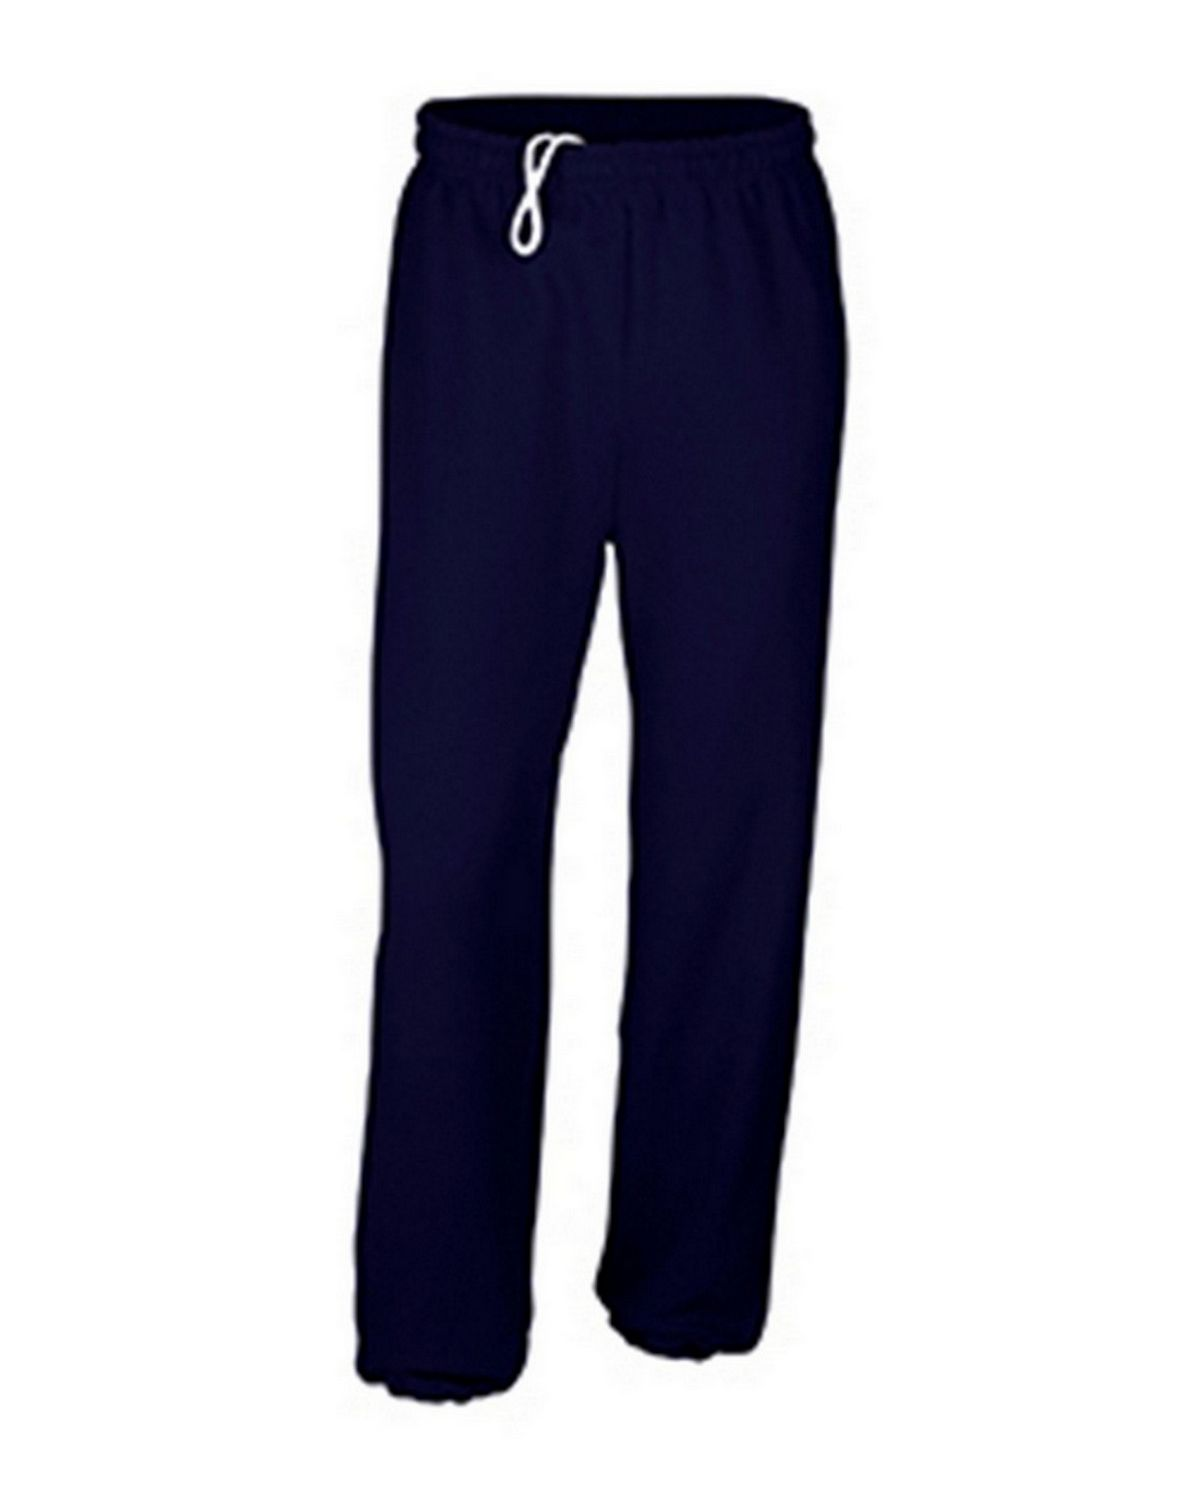 Gildan G18200 Heavy Blend Adult Sweatpants - Navy - 2X G18200